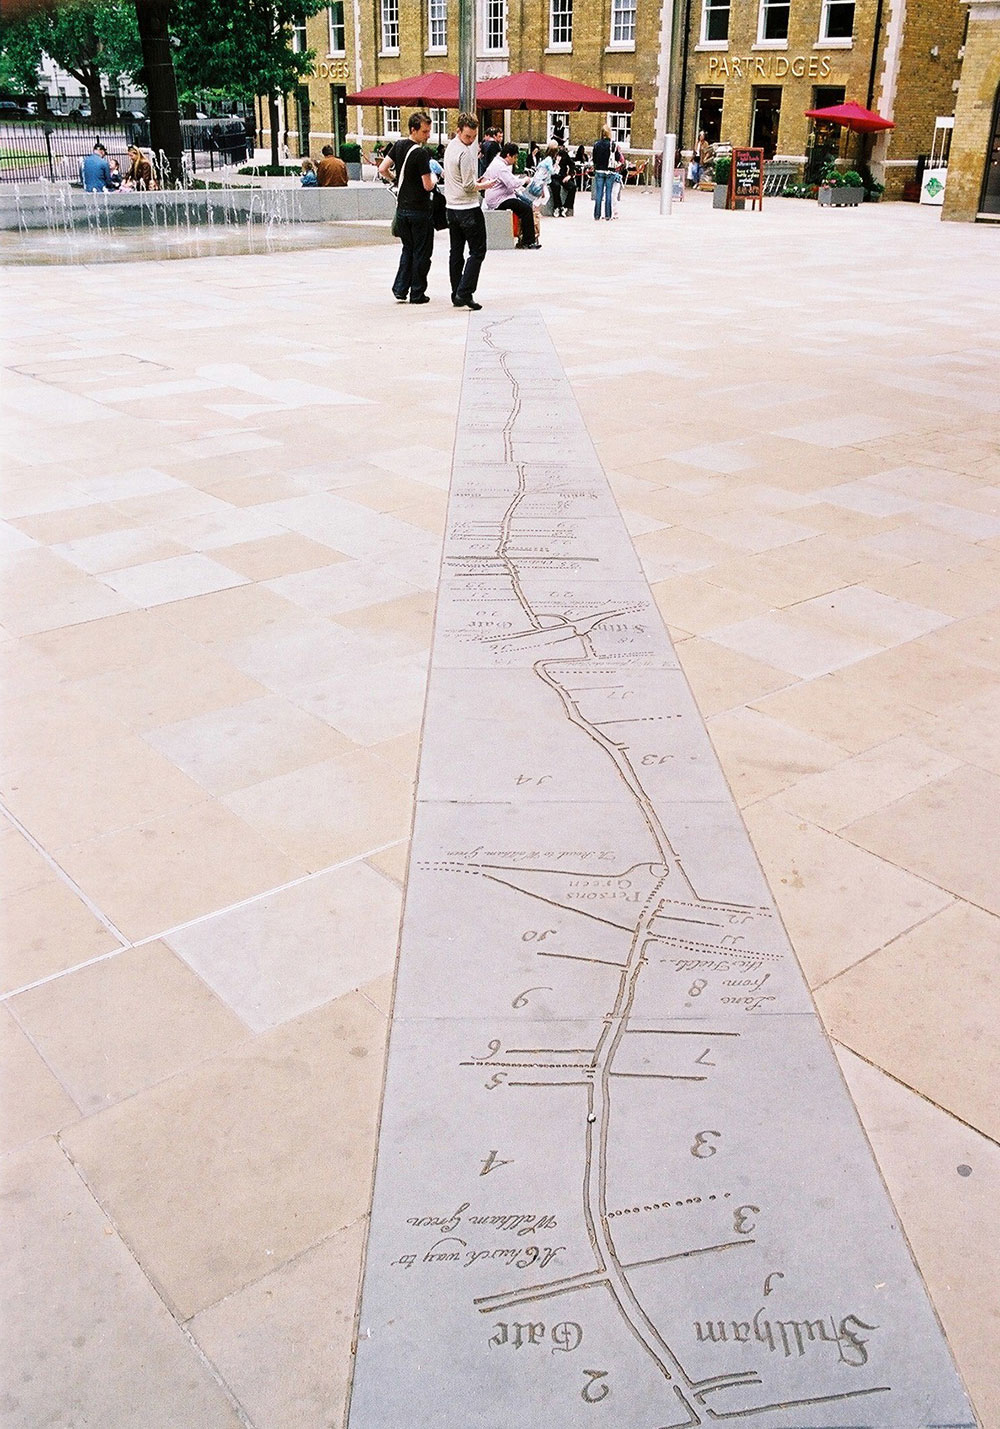 Map incorporated into the paving